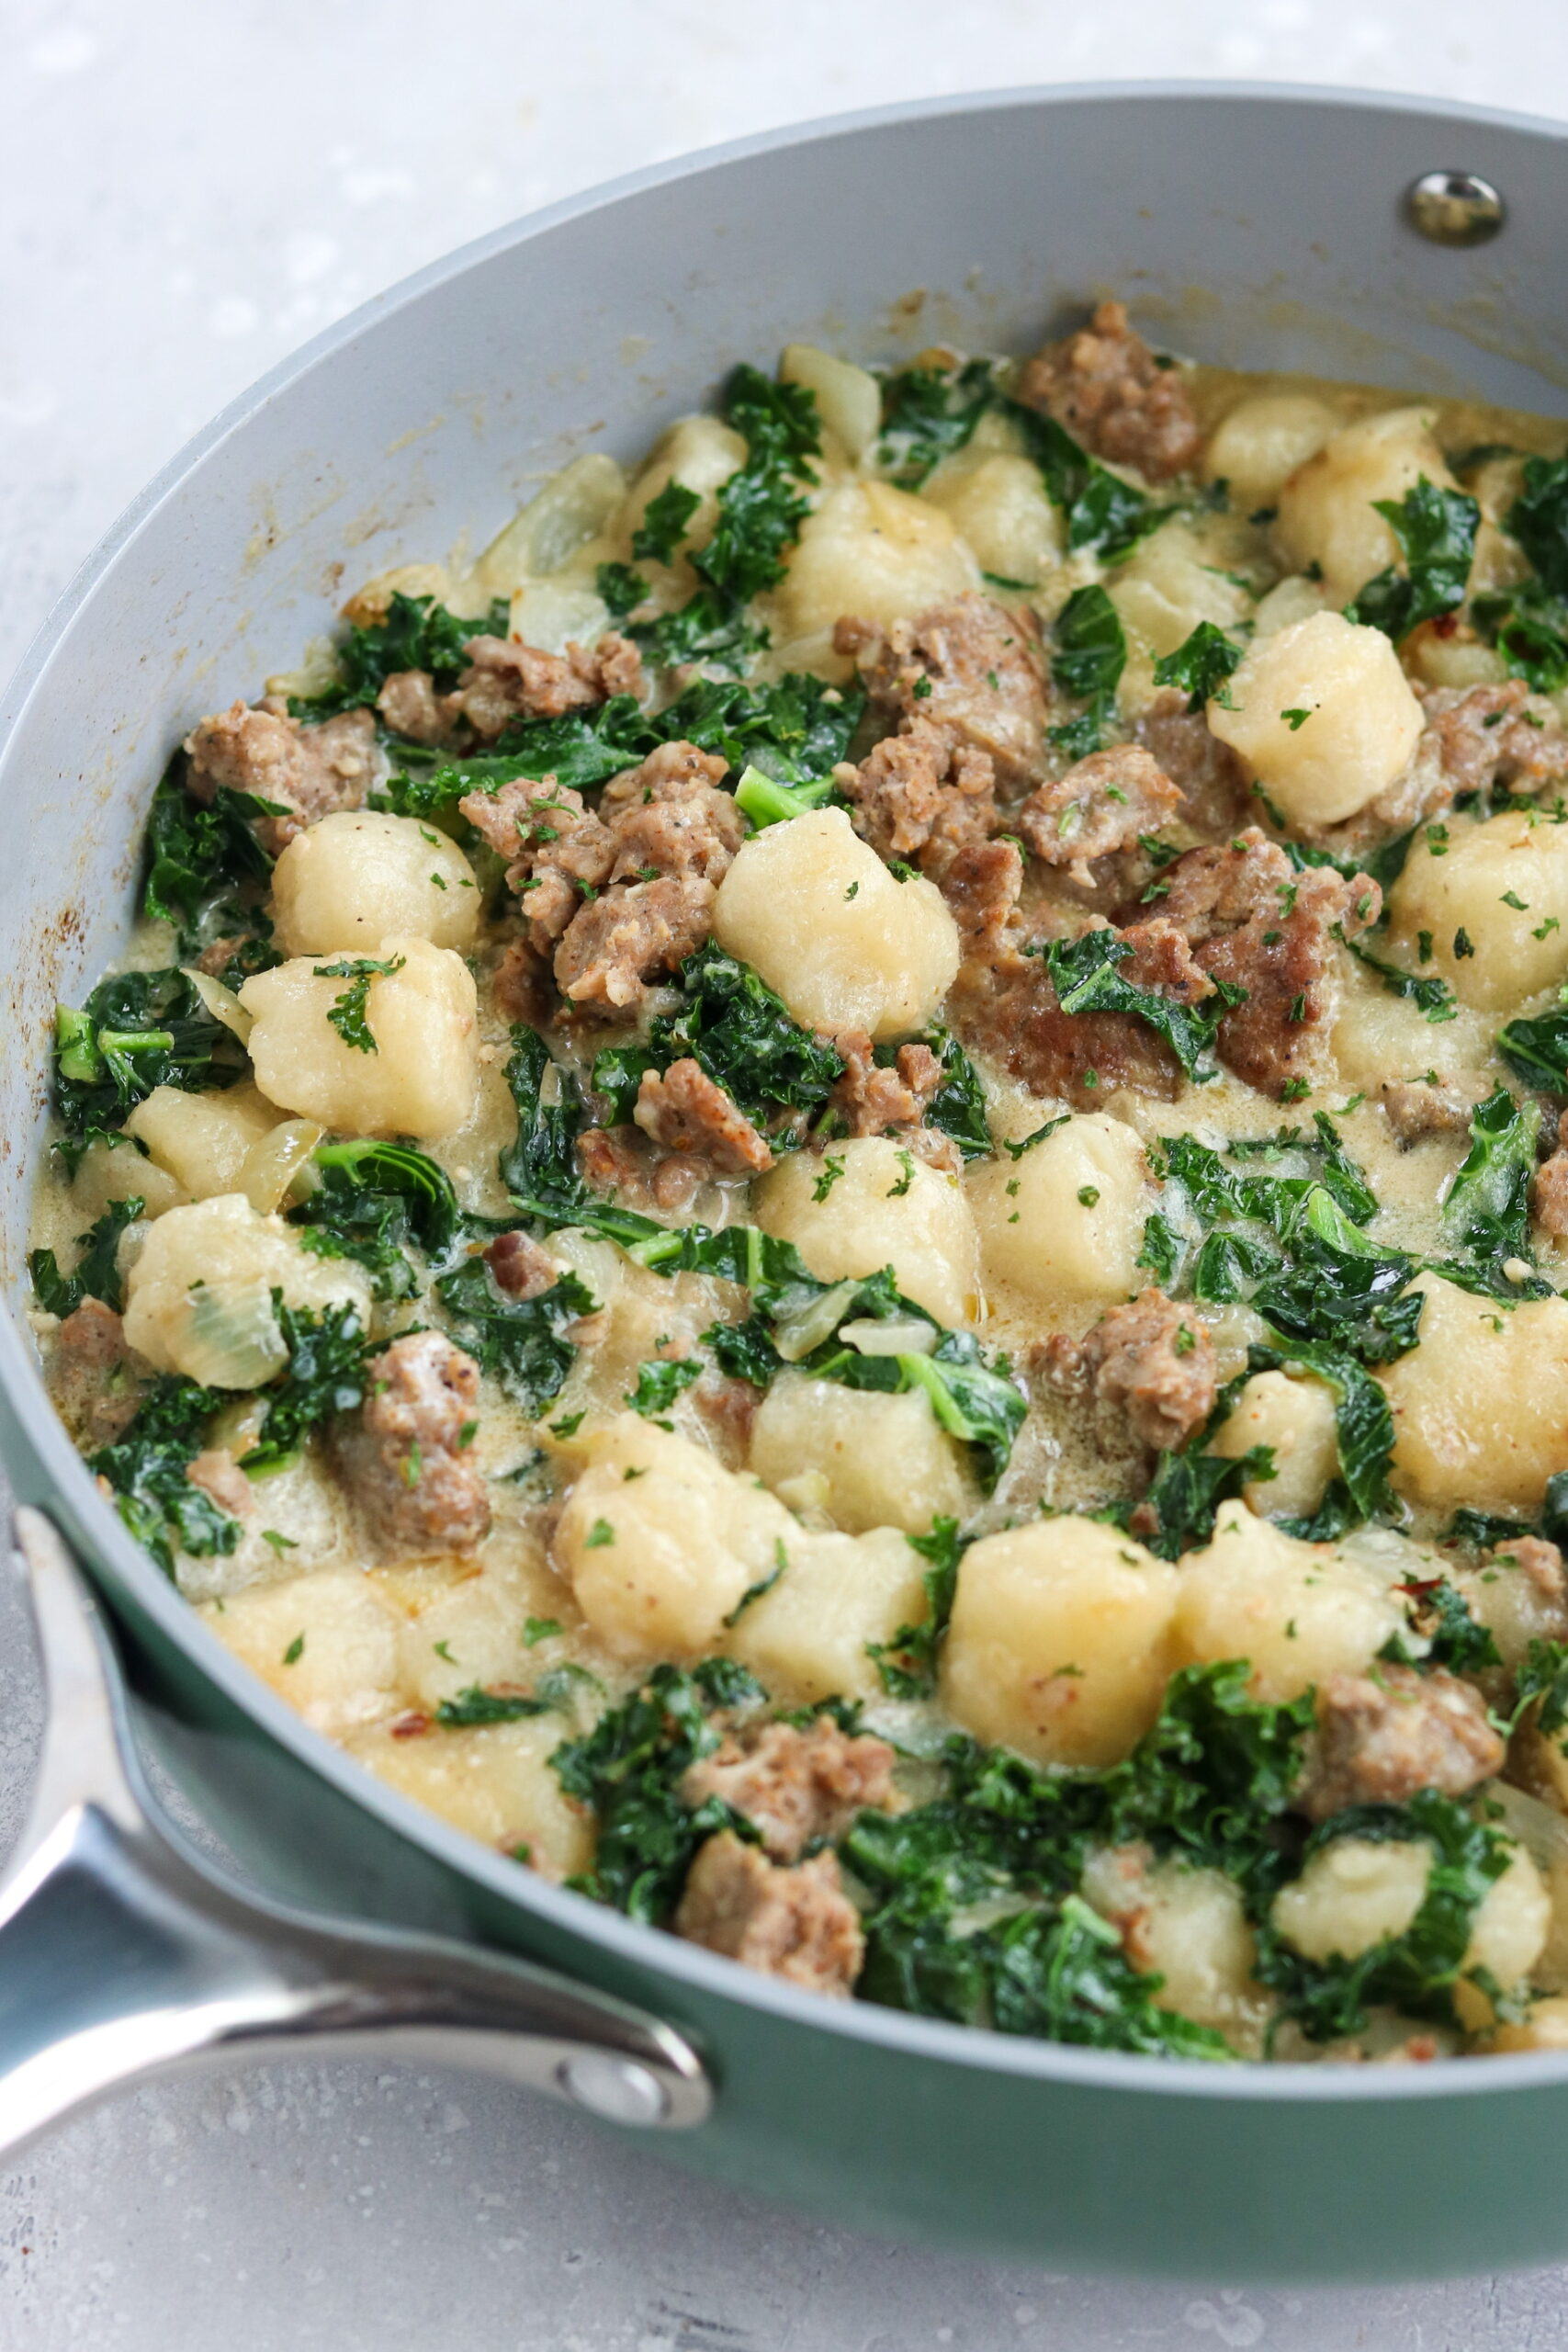 spinach kale gnocchi in a gray skillet with a silver handle with a white background